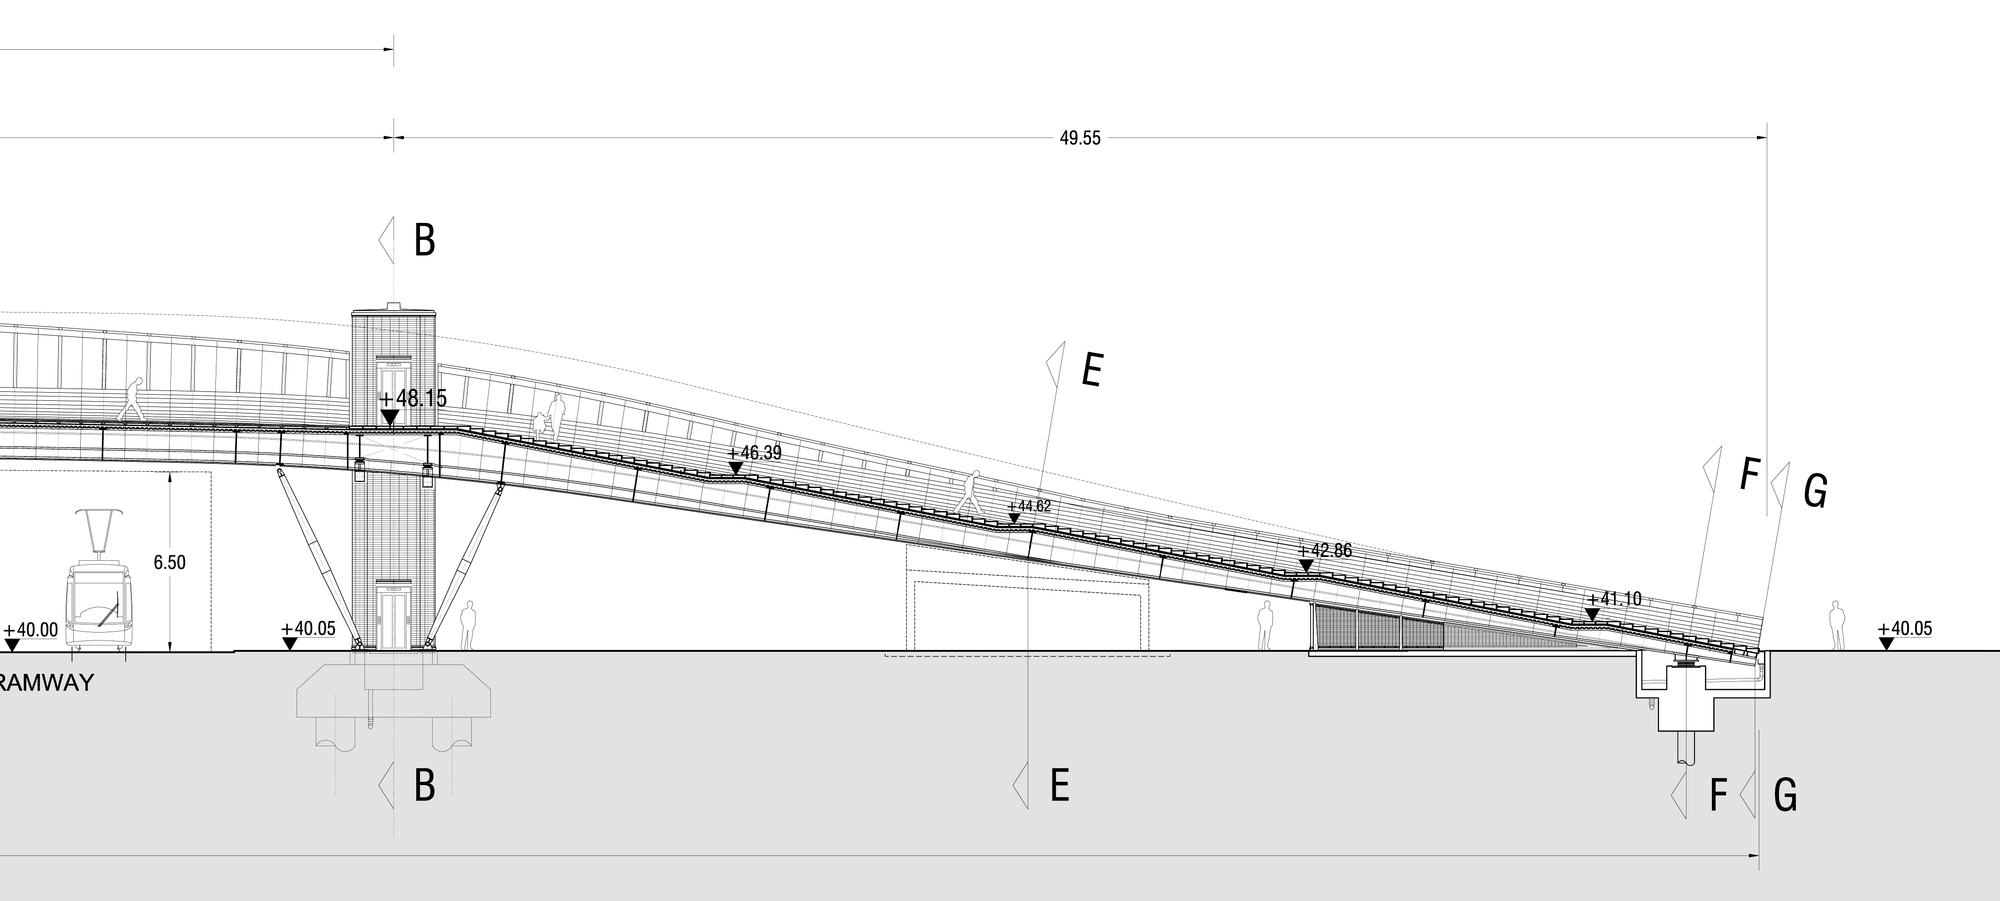 50cfd41cb3fc4b7ffb000143_footbridge-over-the-railways-dvvd-architectes-designers_0411_vilt_dvvd_pro_cp_longi.png (2000×901)